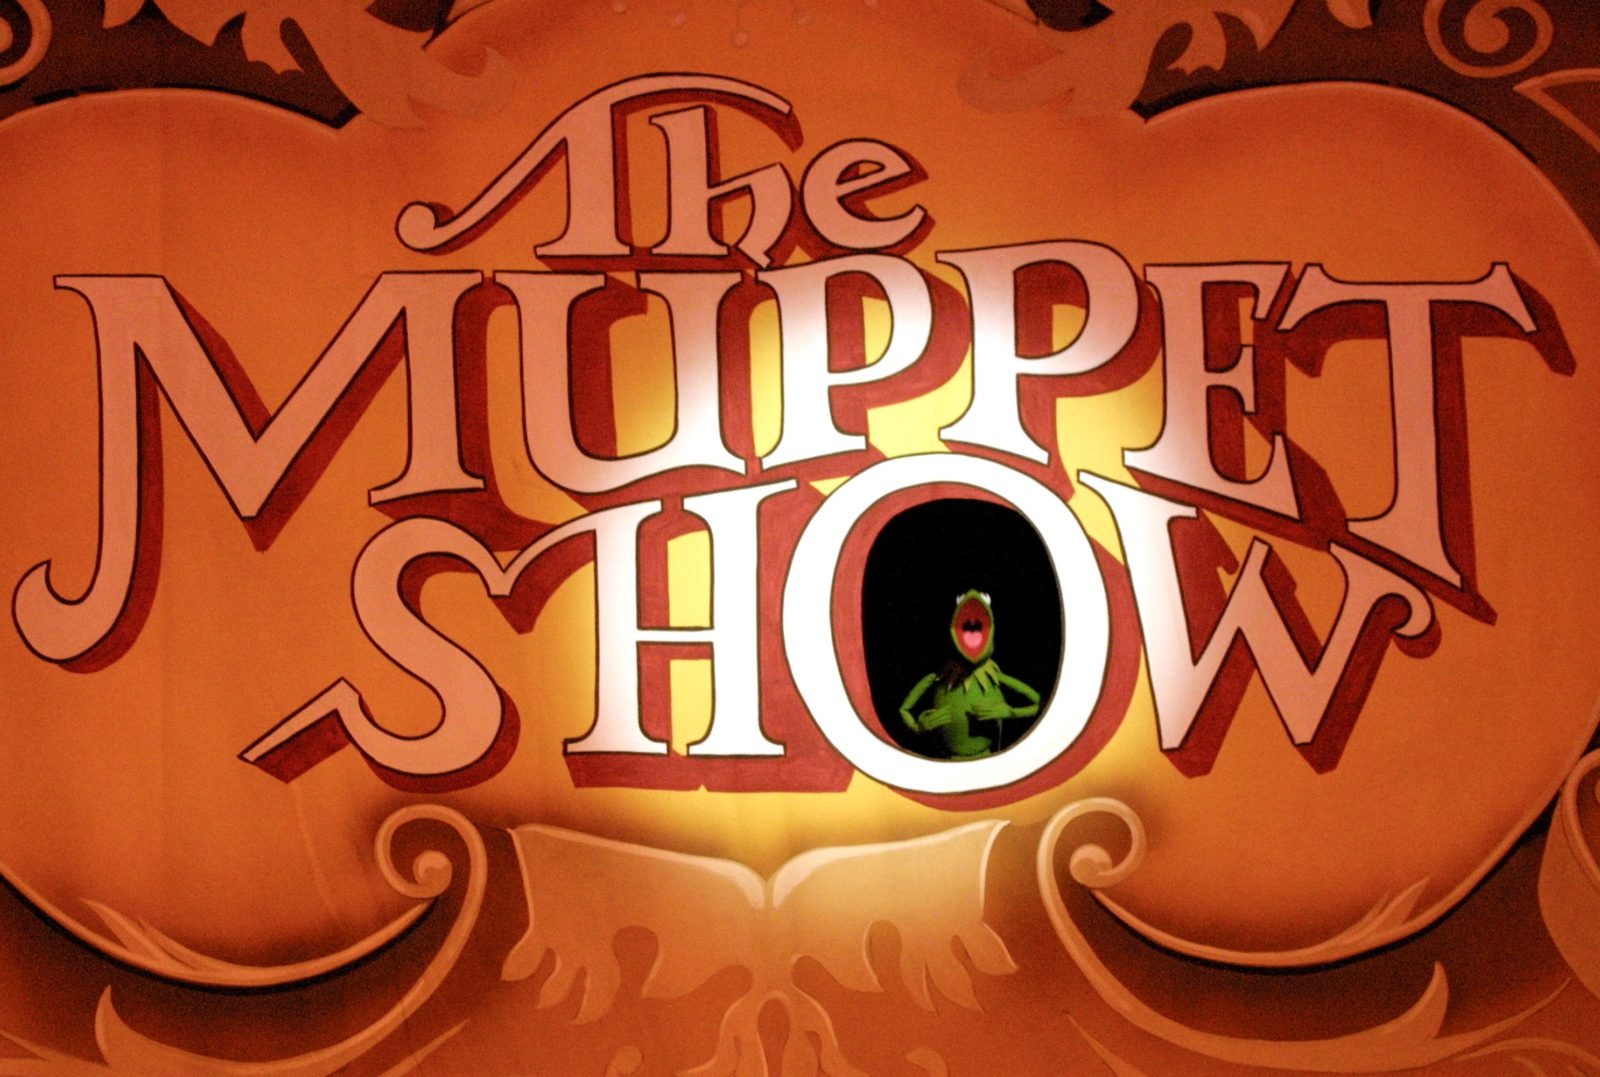 'The Muppet Show' coming to Disney+ in February